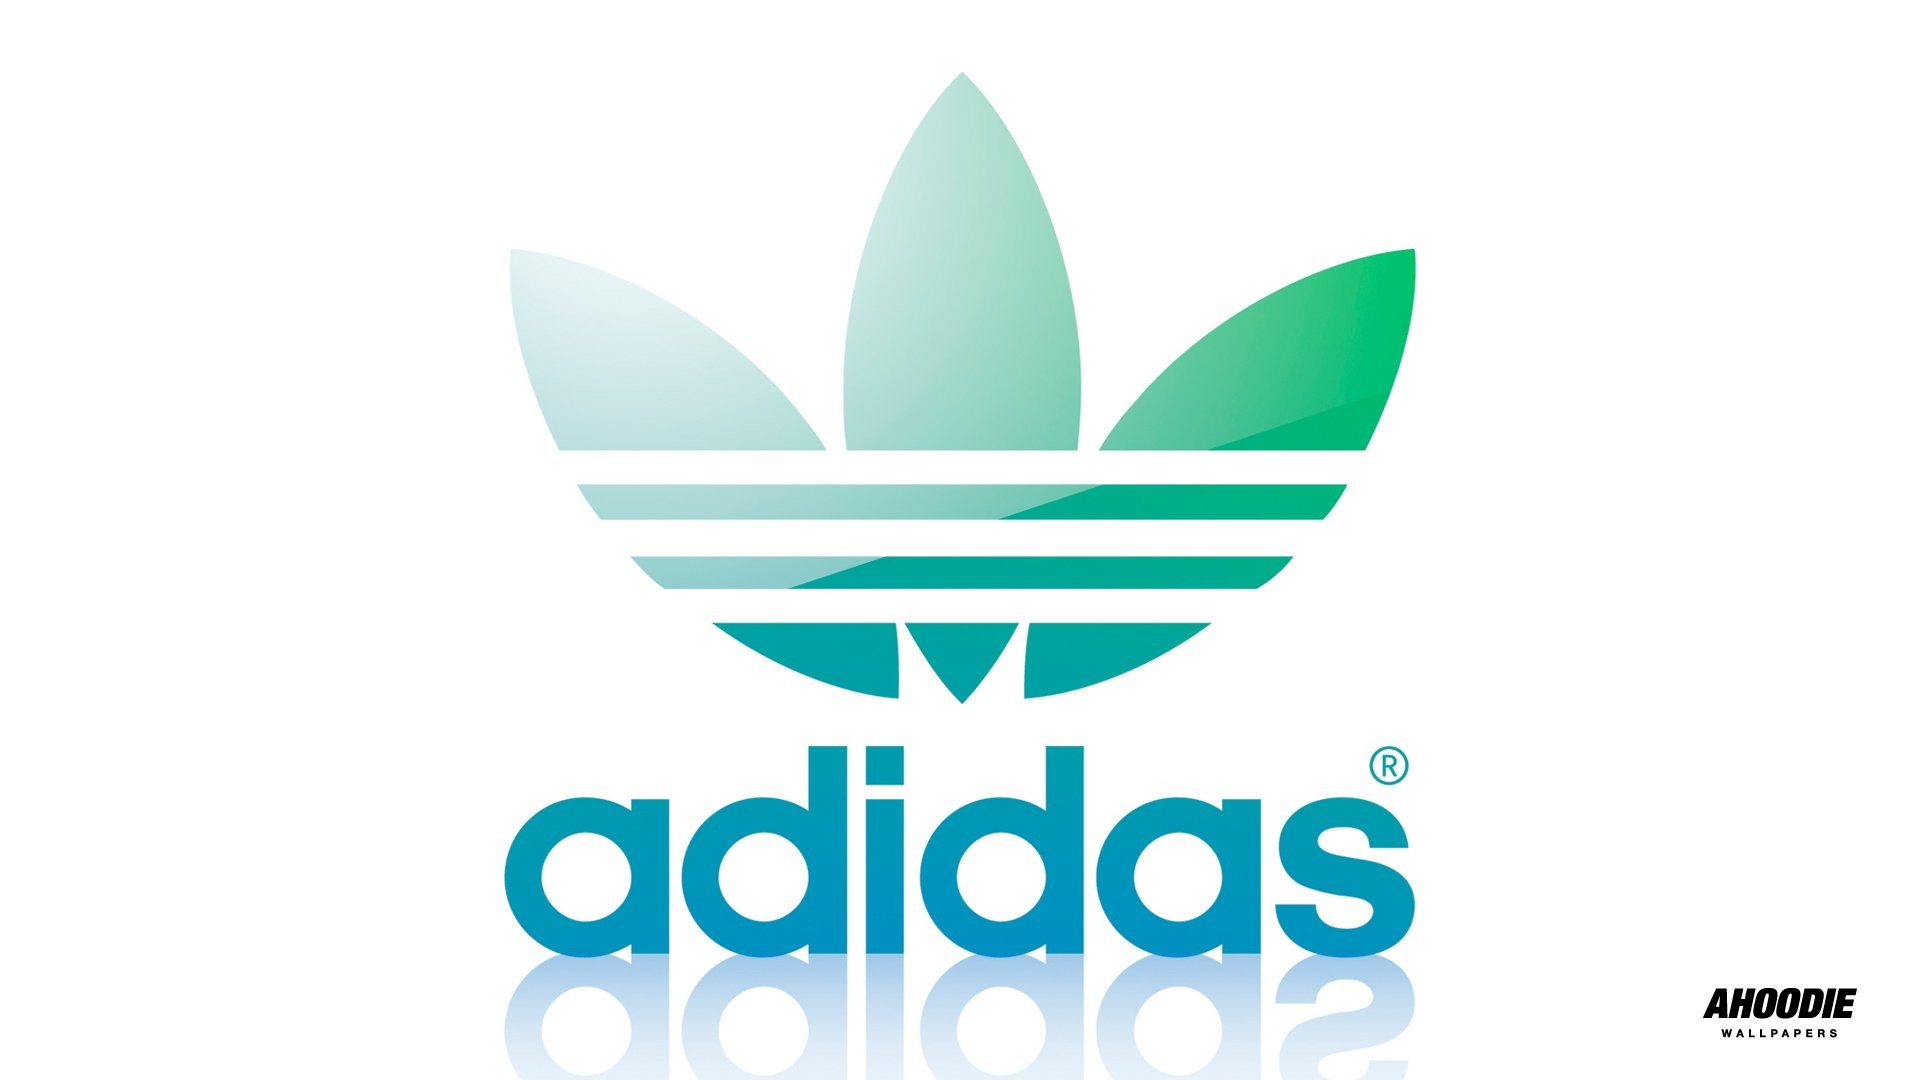 Adidas wallpaper 76 images 1920x1080 adidas hd wallpapers voltagebd Image collections